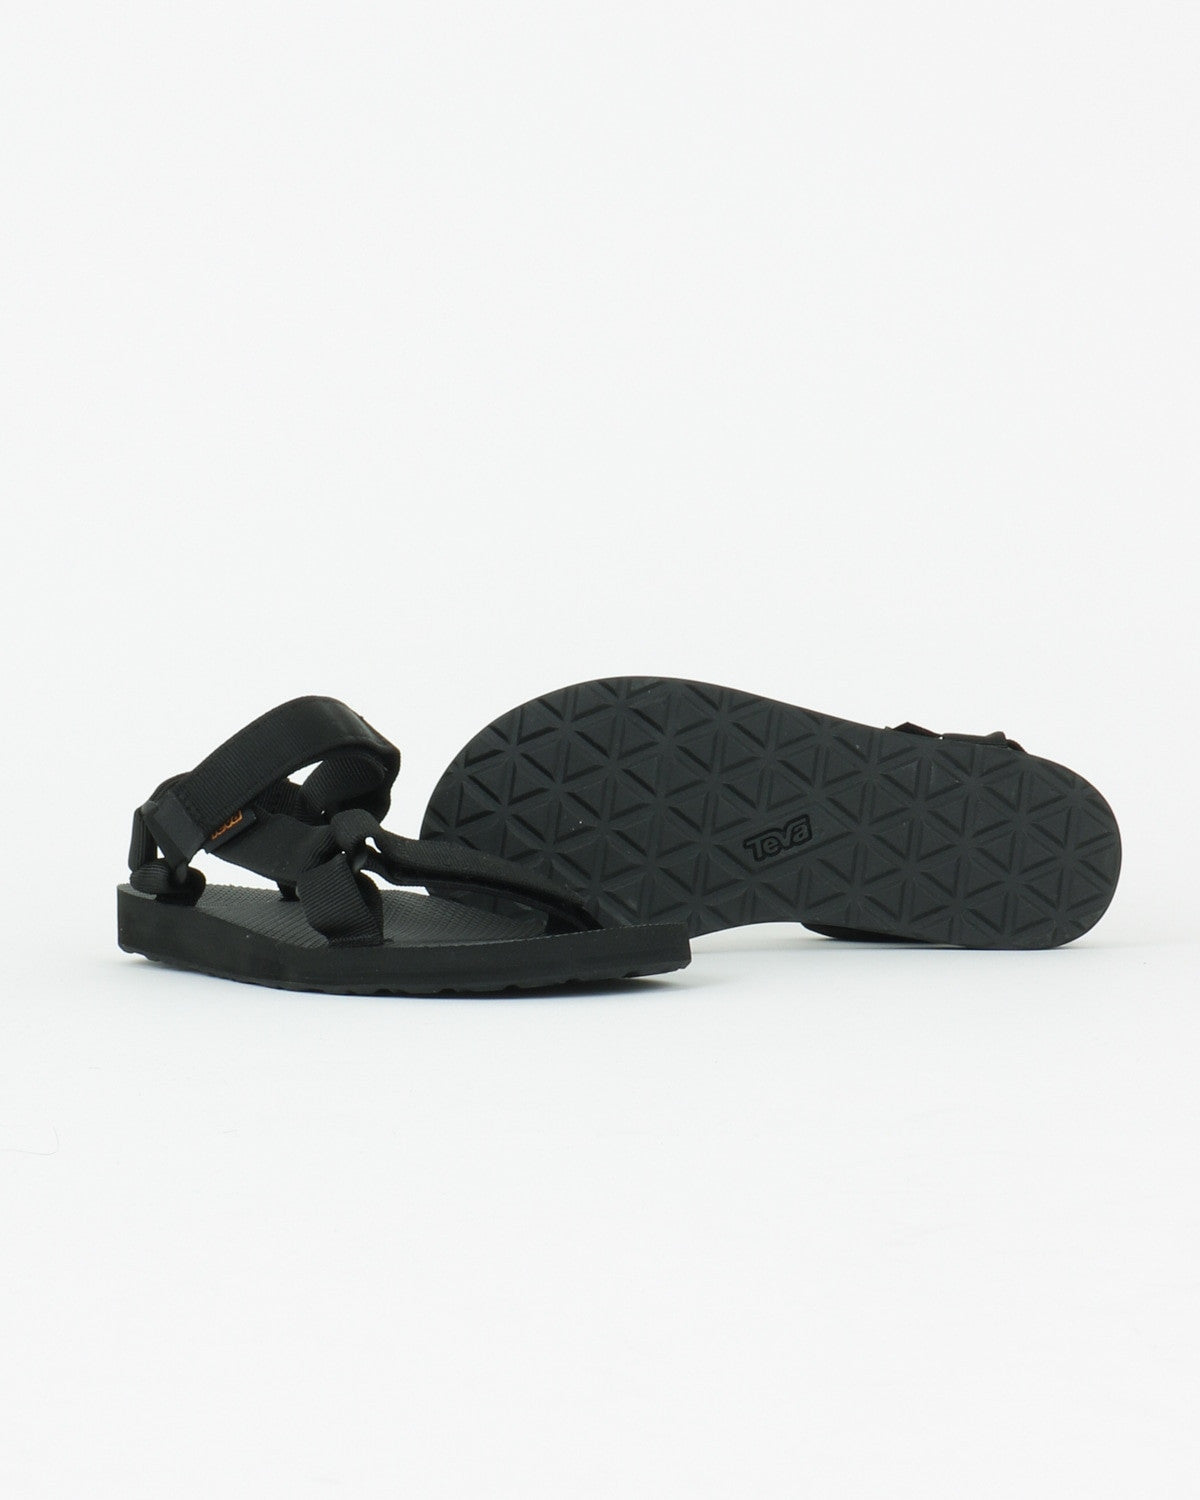 teva_original universal_black_wmn_view_3_3